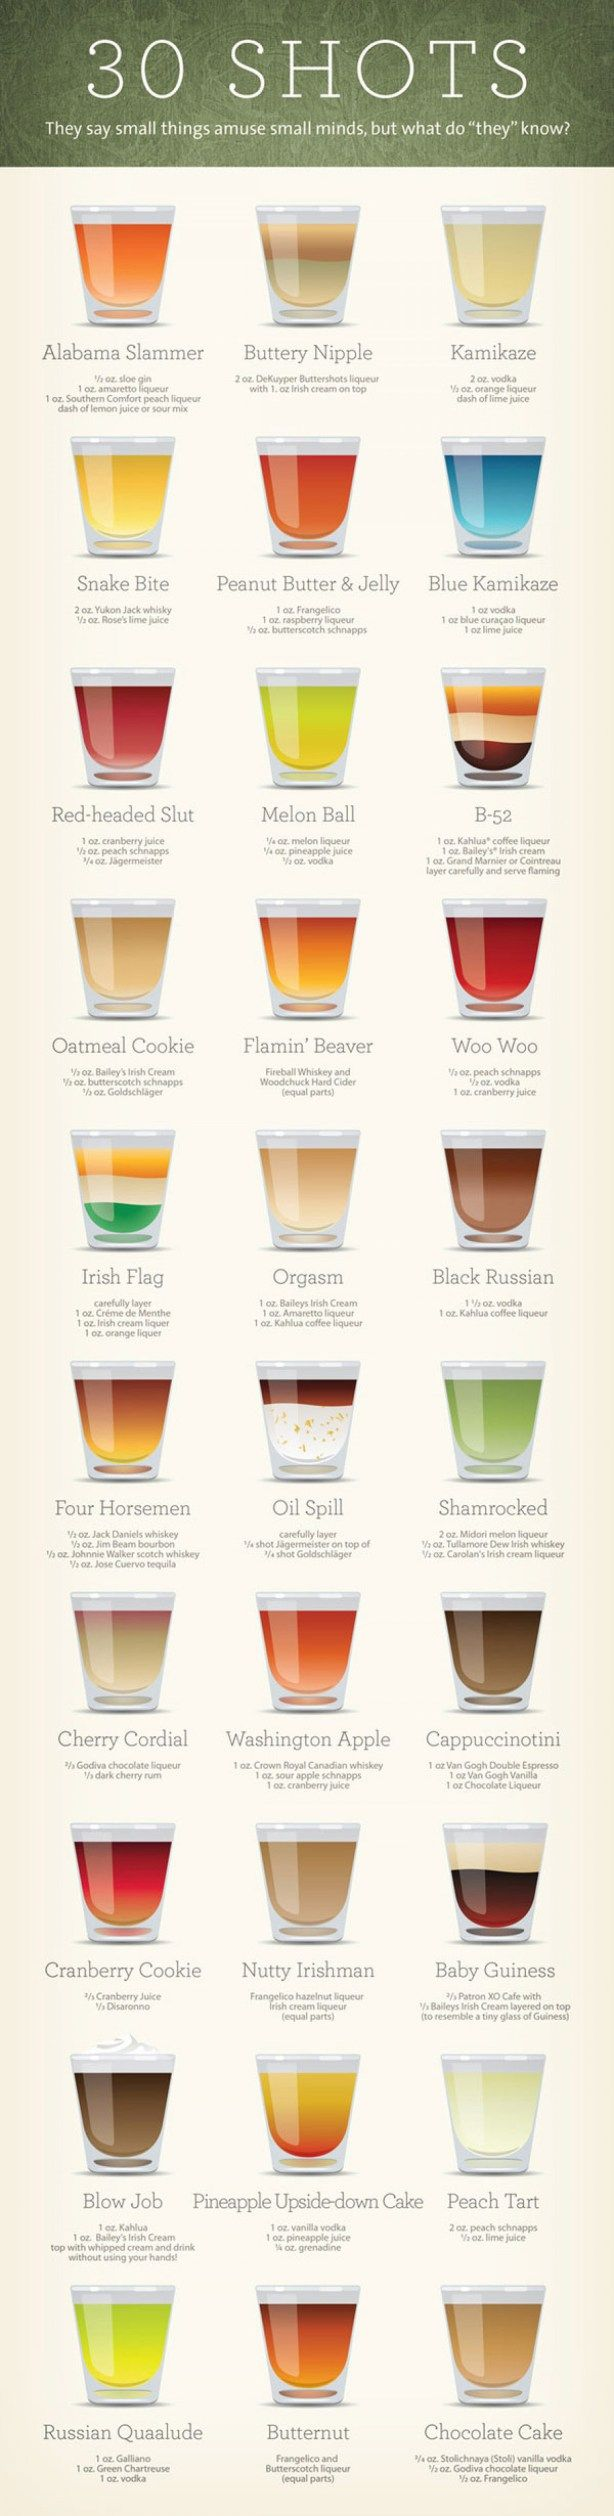 this is a list of different shots that a bartender can make needed